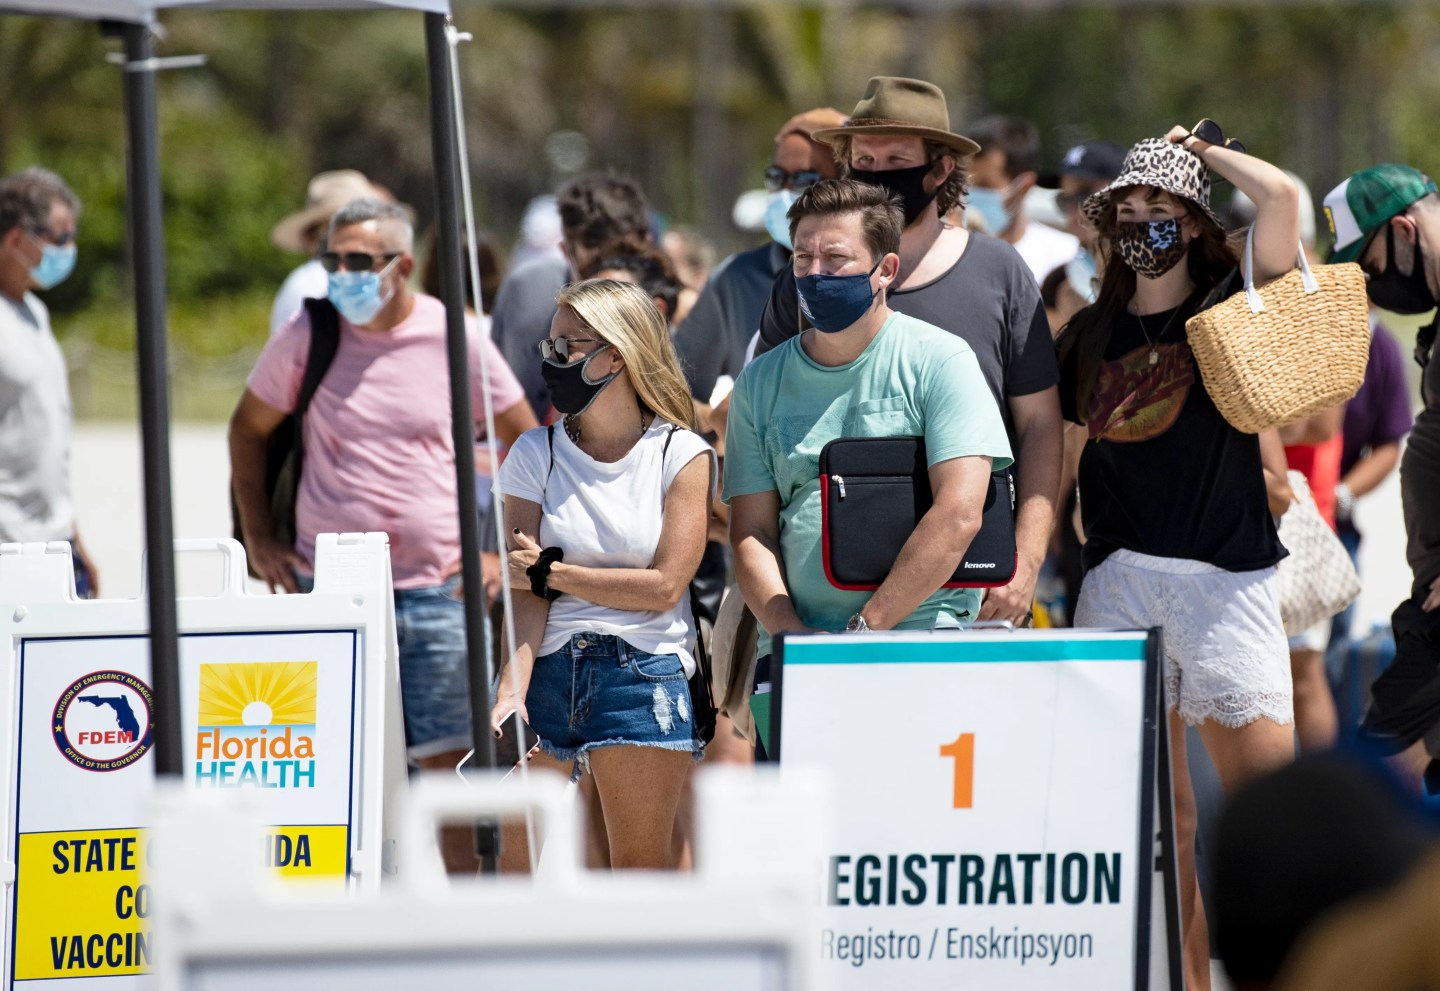 People wait in line Sunday to receive a COVID-19 vaccine at a one-time pop-up vaccination site in Miami Beach.